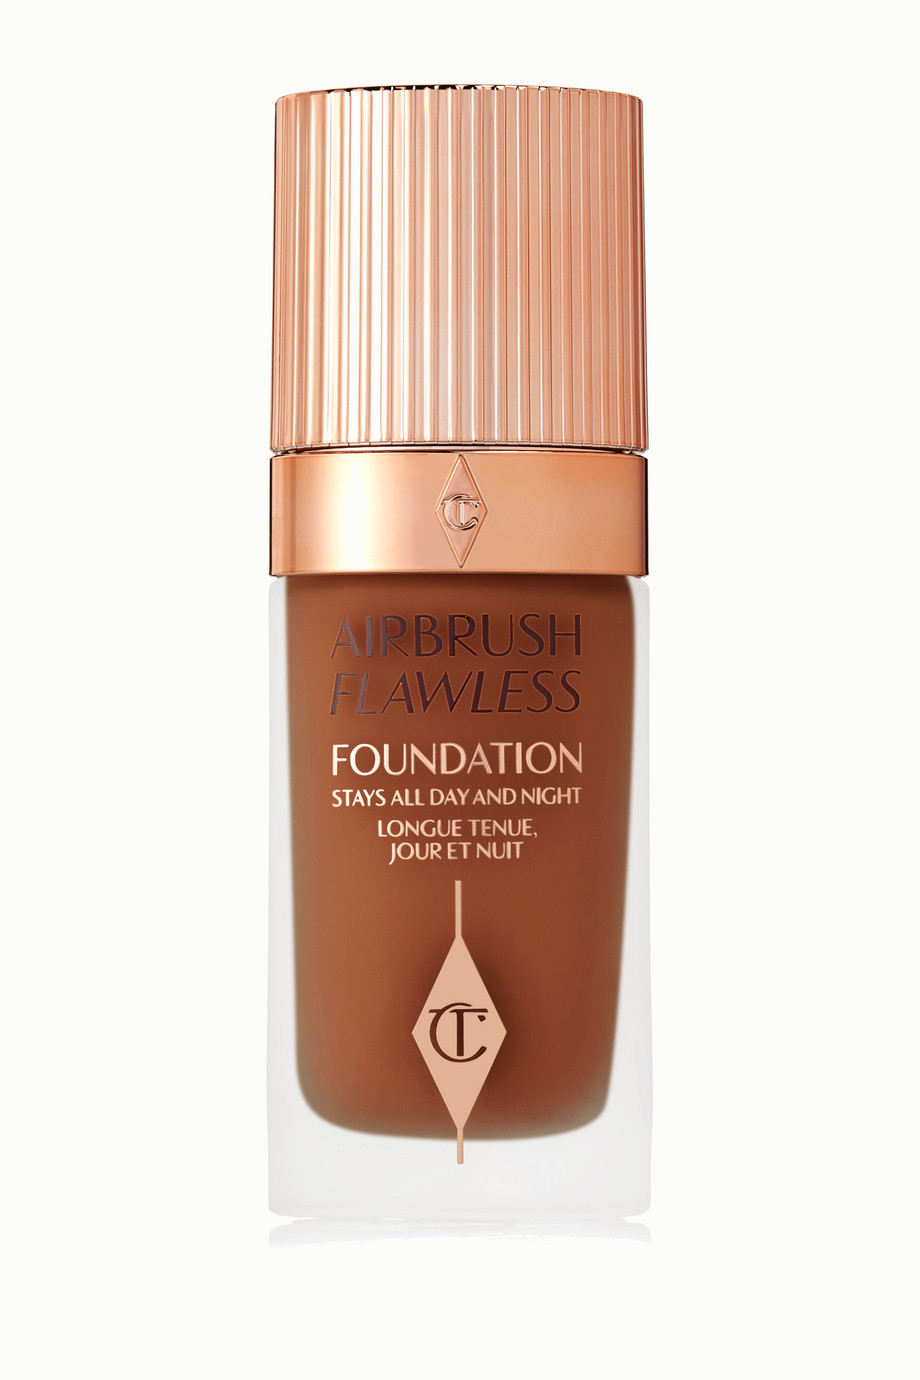 Charlotte Tilbury Airbrush Flawless Foundation - 13 Cool, 30ml